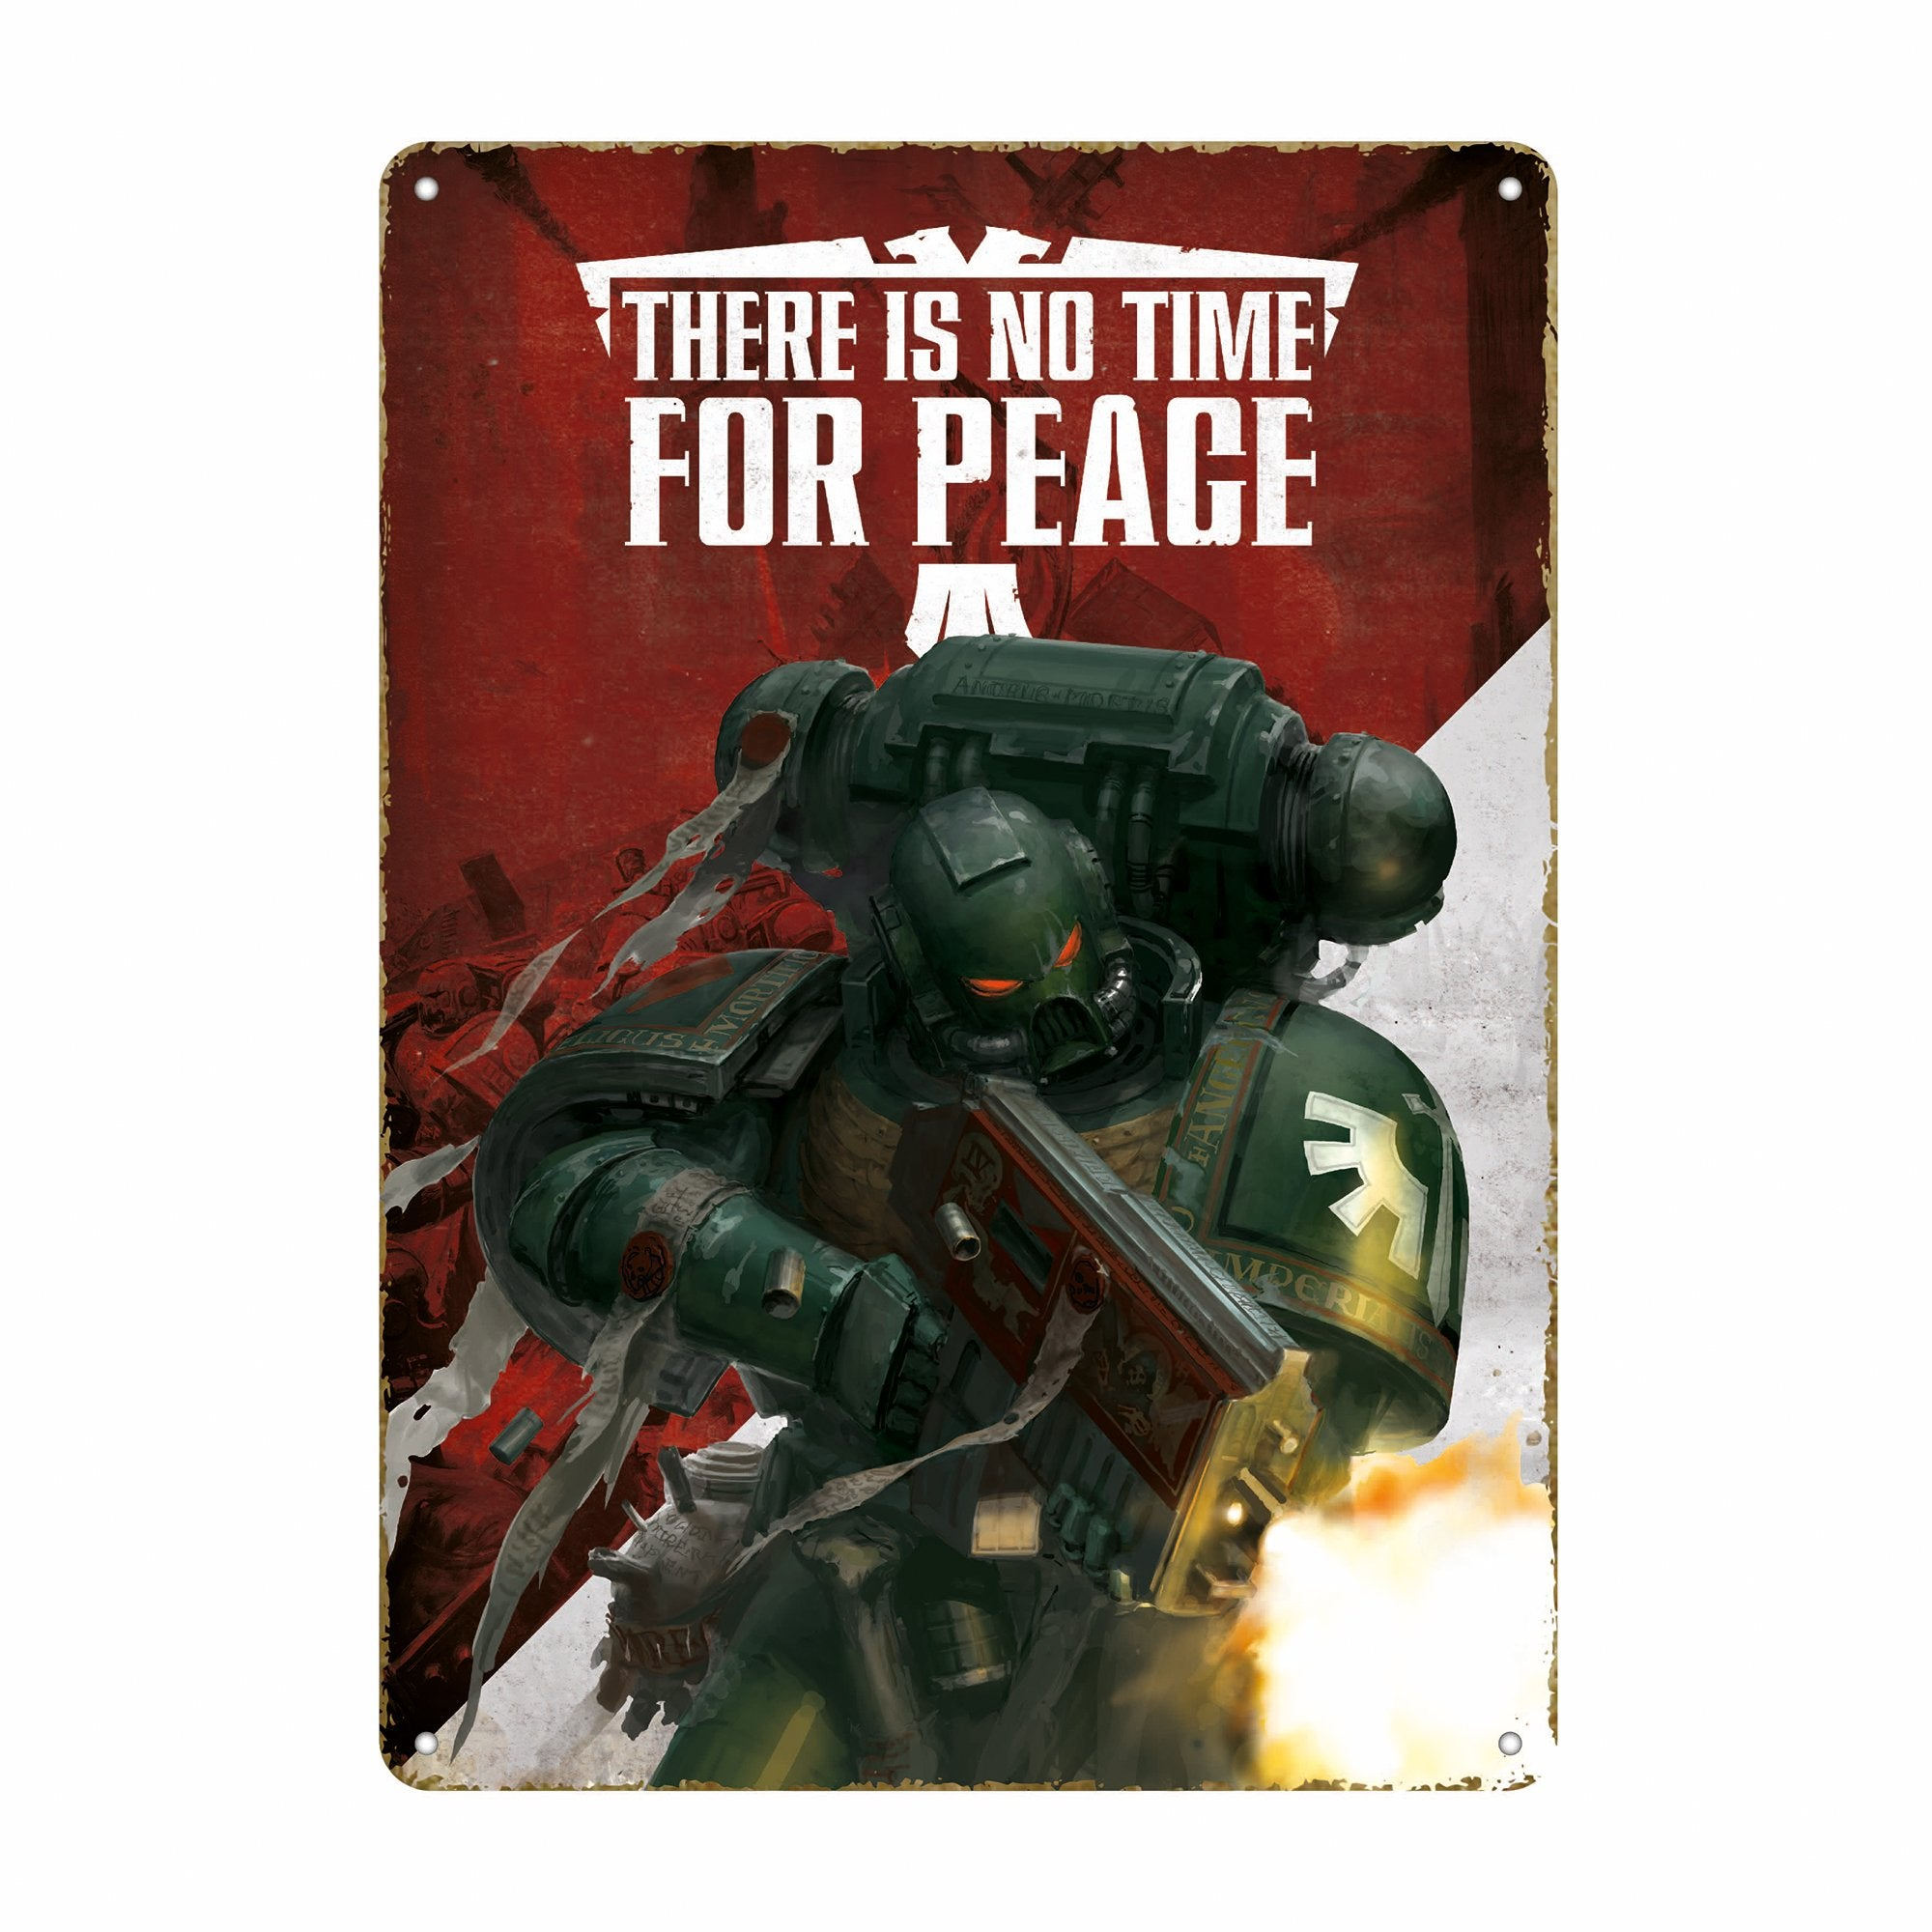 Warhammer 40,000 Tin Sign - Propaganda - Half Moon Bay US